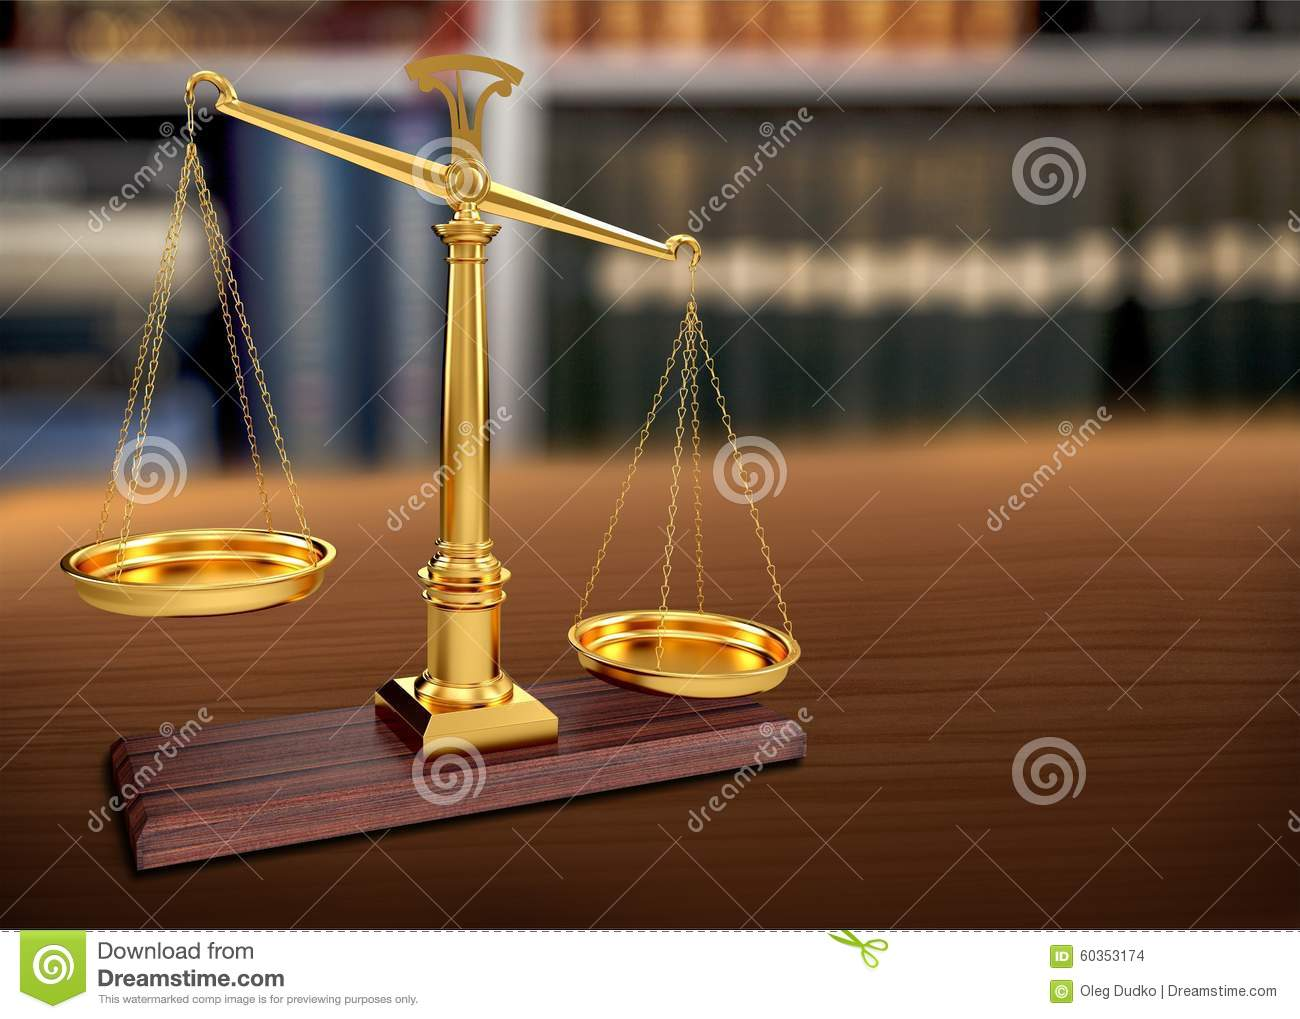 Law Justice Stock Photo - Image: 60353174